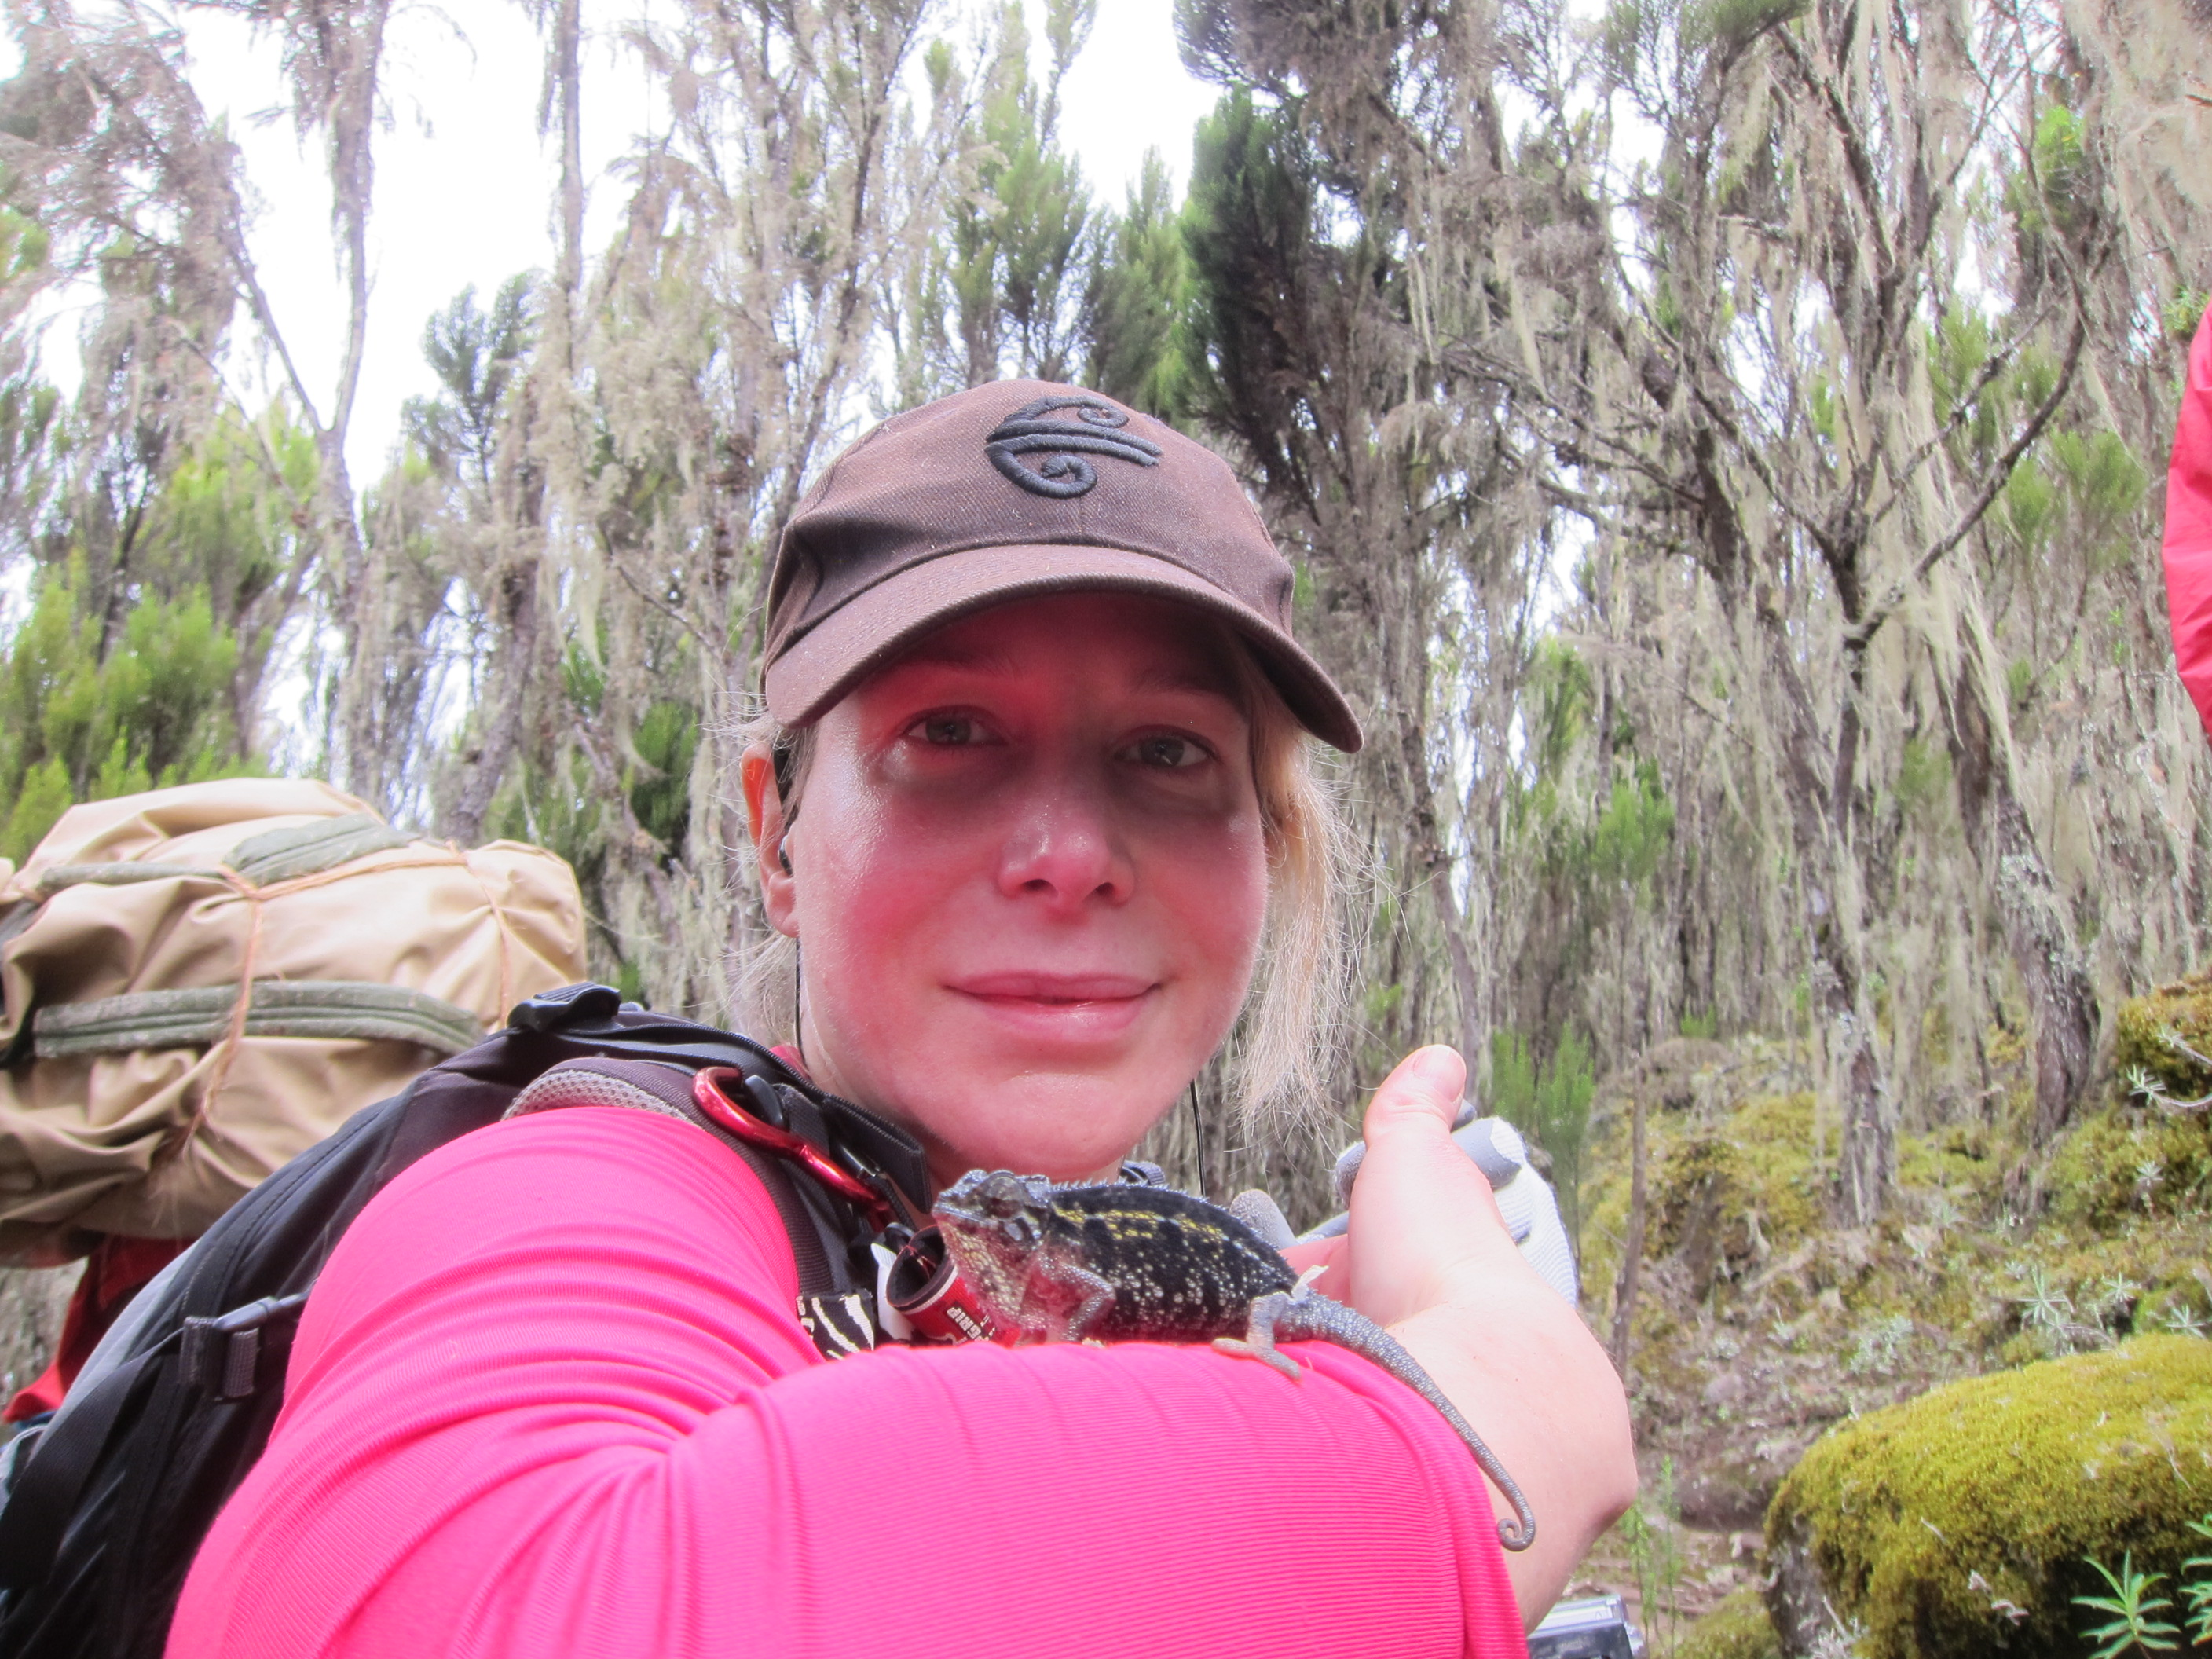 Vanessa poses with a lizard at Mount Kilimanjaro - Vanessa is wearing a pink top, balancing a lizard on her forearm. She is wearing a brown cap, and there are trees in the background  - 5dbcb534 ae42 4847 93f1 918f9606d880 - 'I could never say no to space': British-American explorer aims for the stars